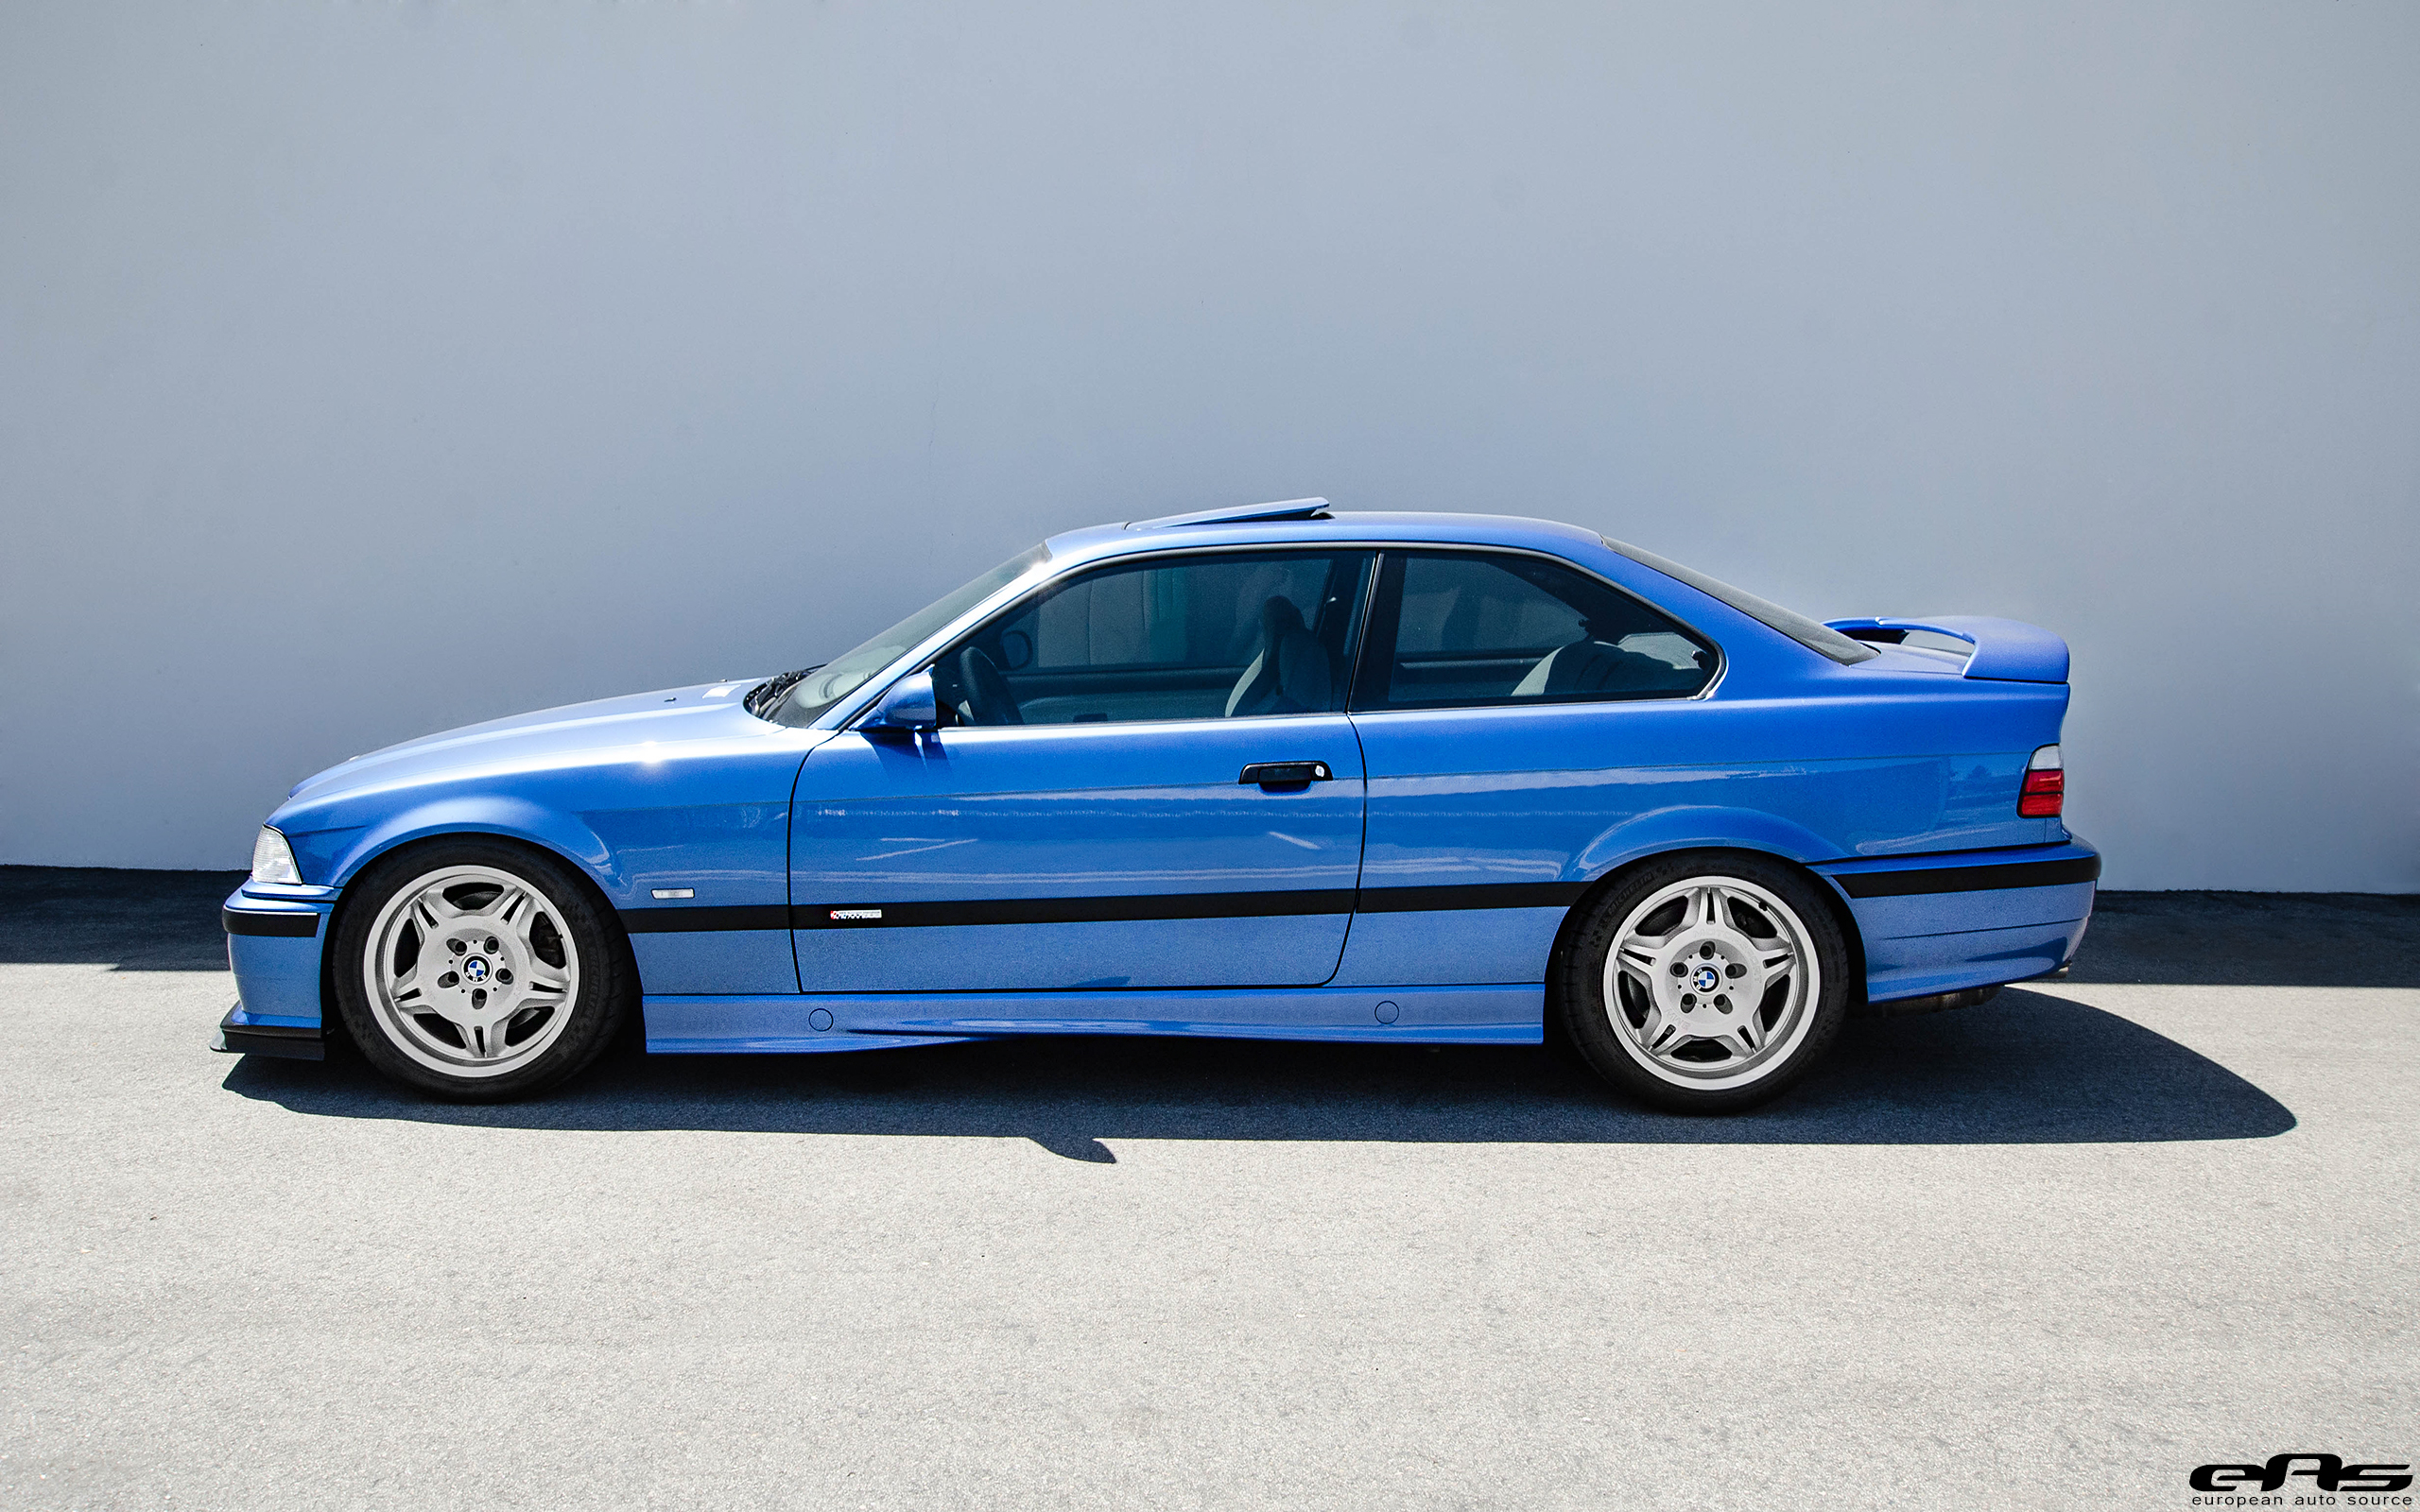 Interlagos Blue E46 M3 >> 1997 Estoril Blue E36 M3 | BMW Performance Parts & Services